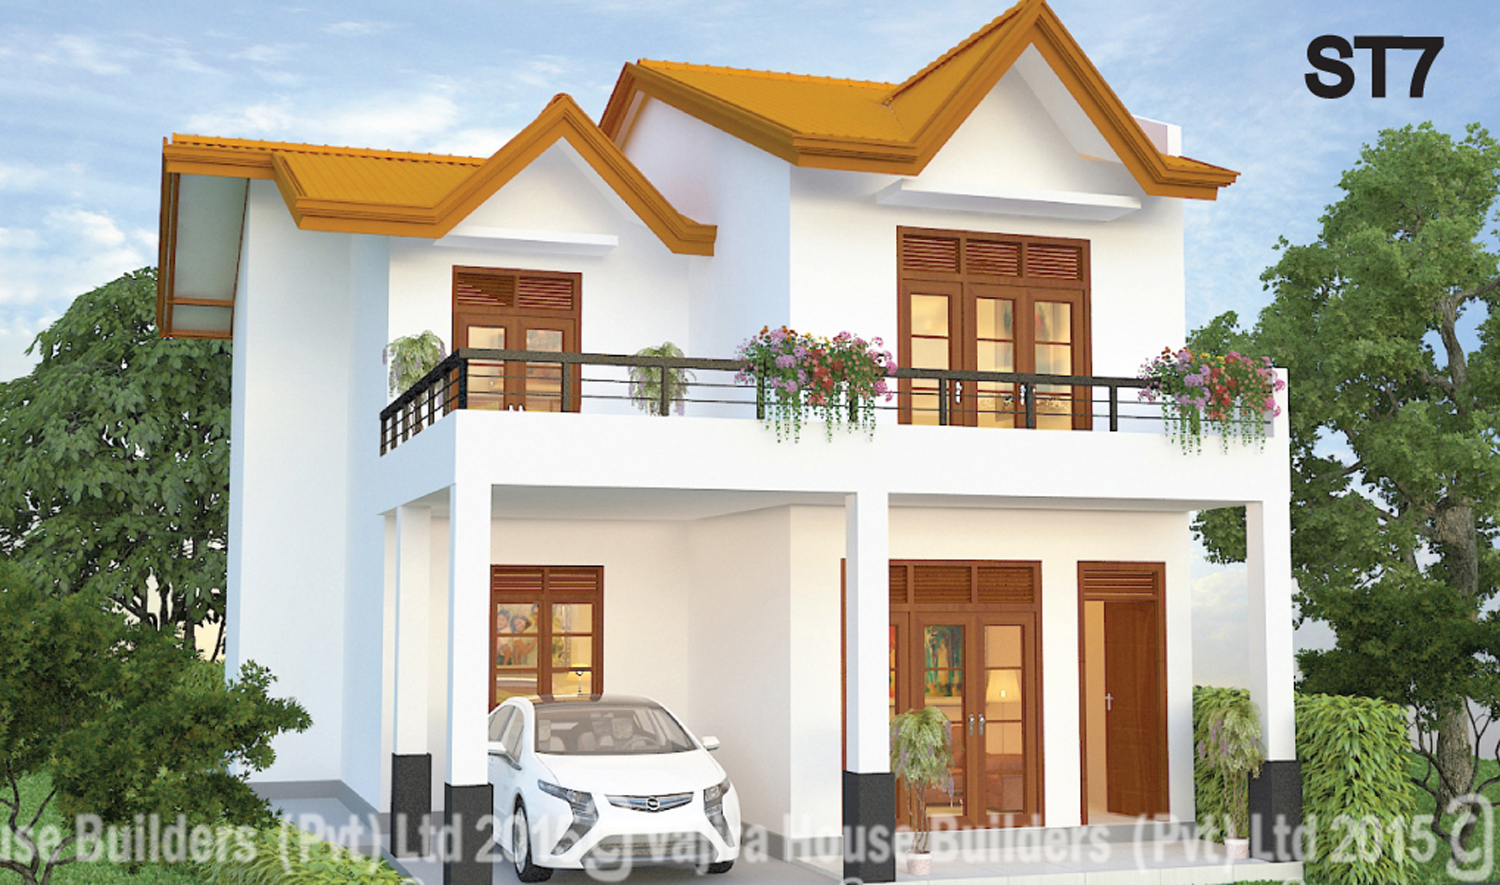 Sri lankan house designs joy studio design gallery for House interior designs sri lanka